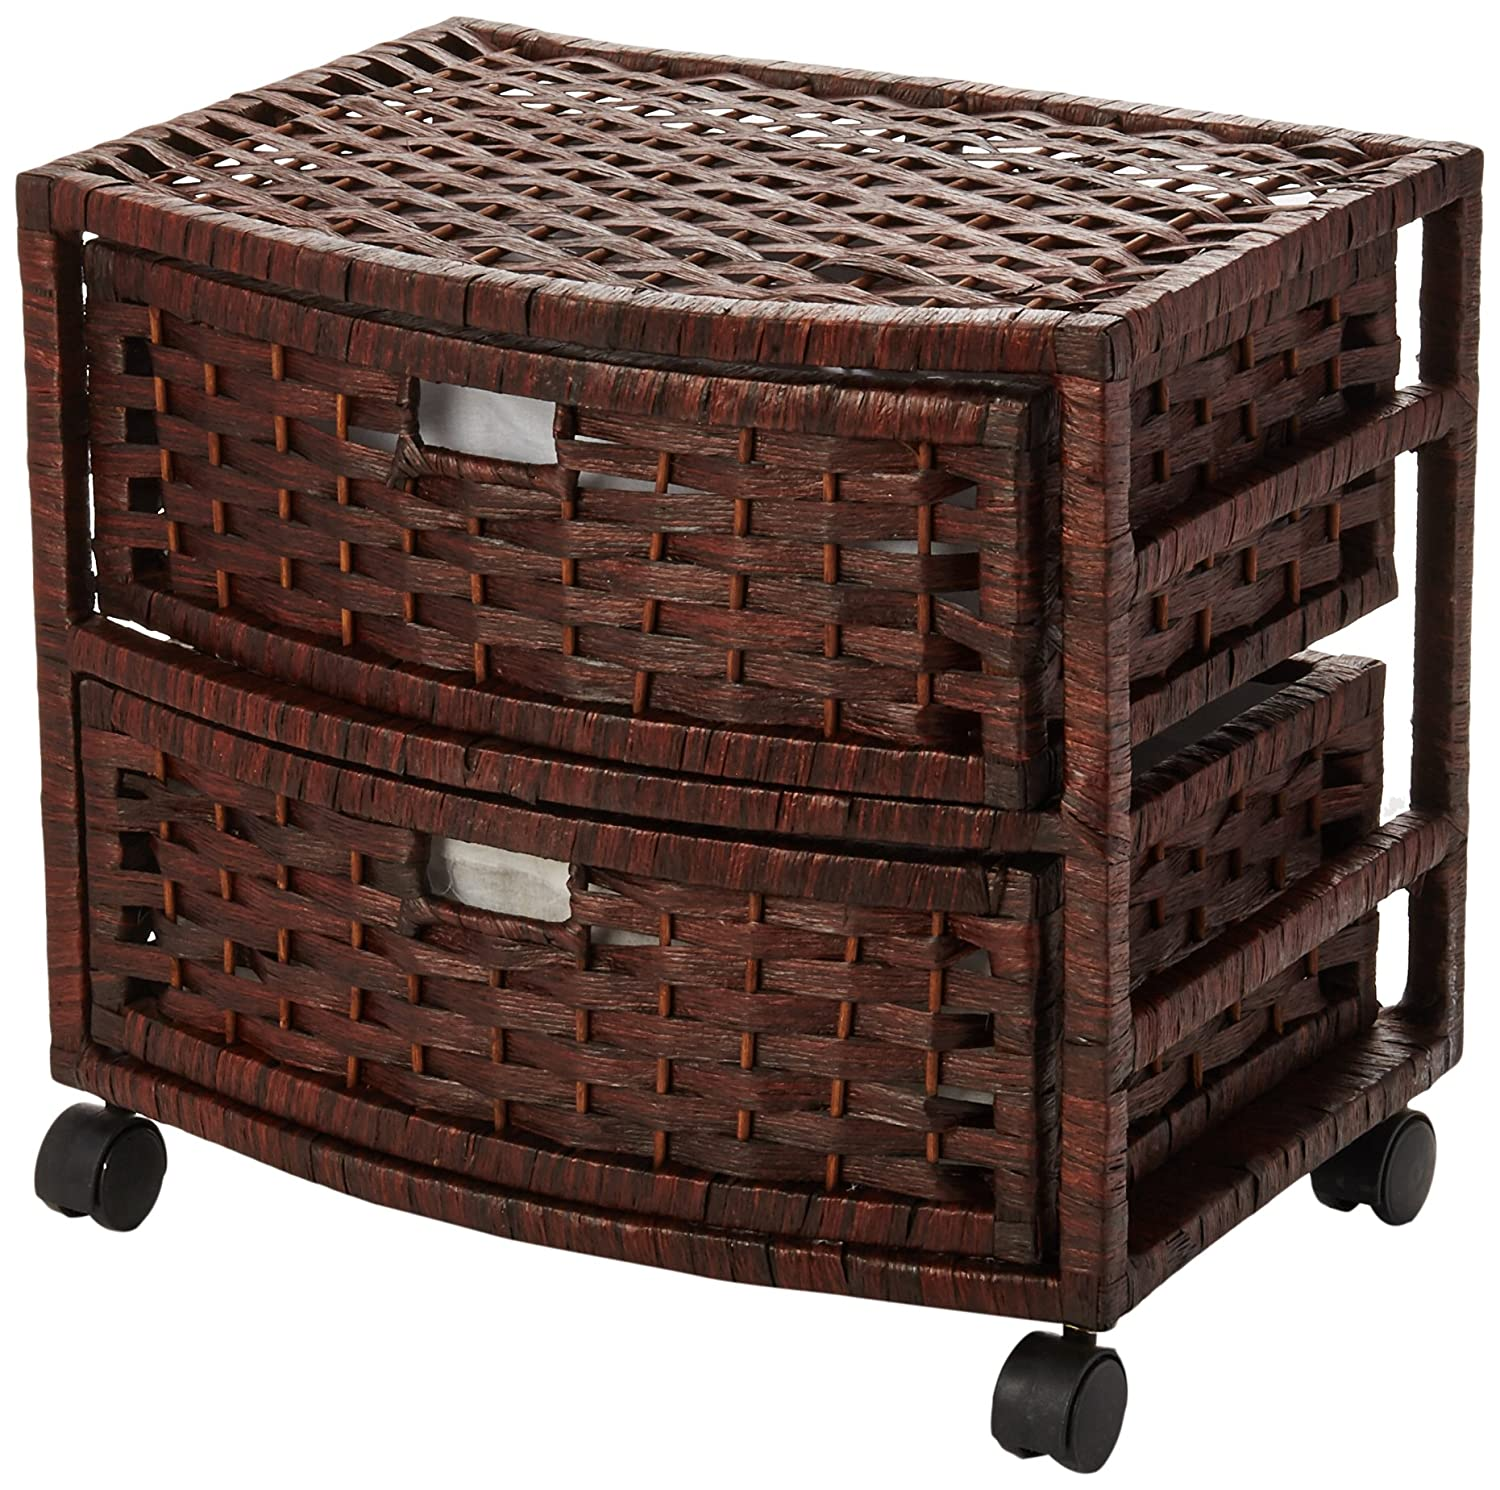 Oriental Furniture 16 Natural Fiber Occasional Chest of Drawers - Mocha